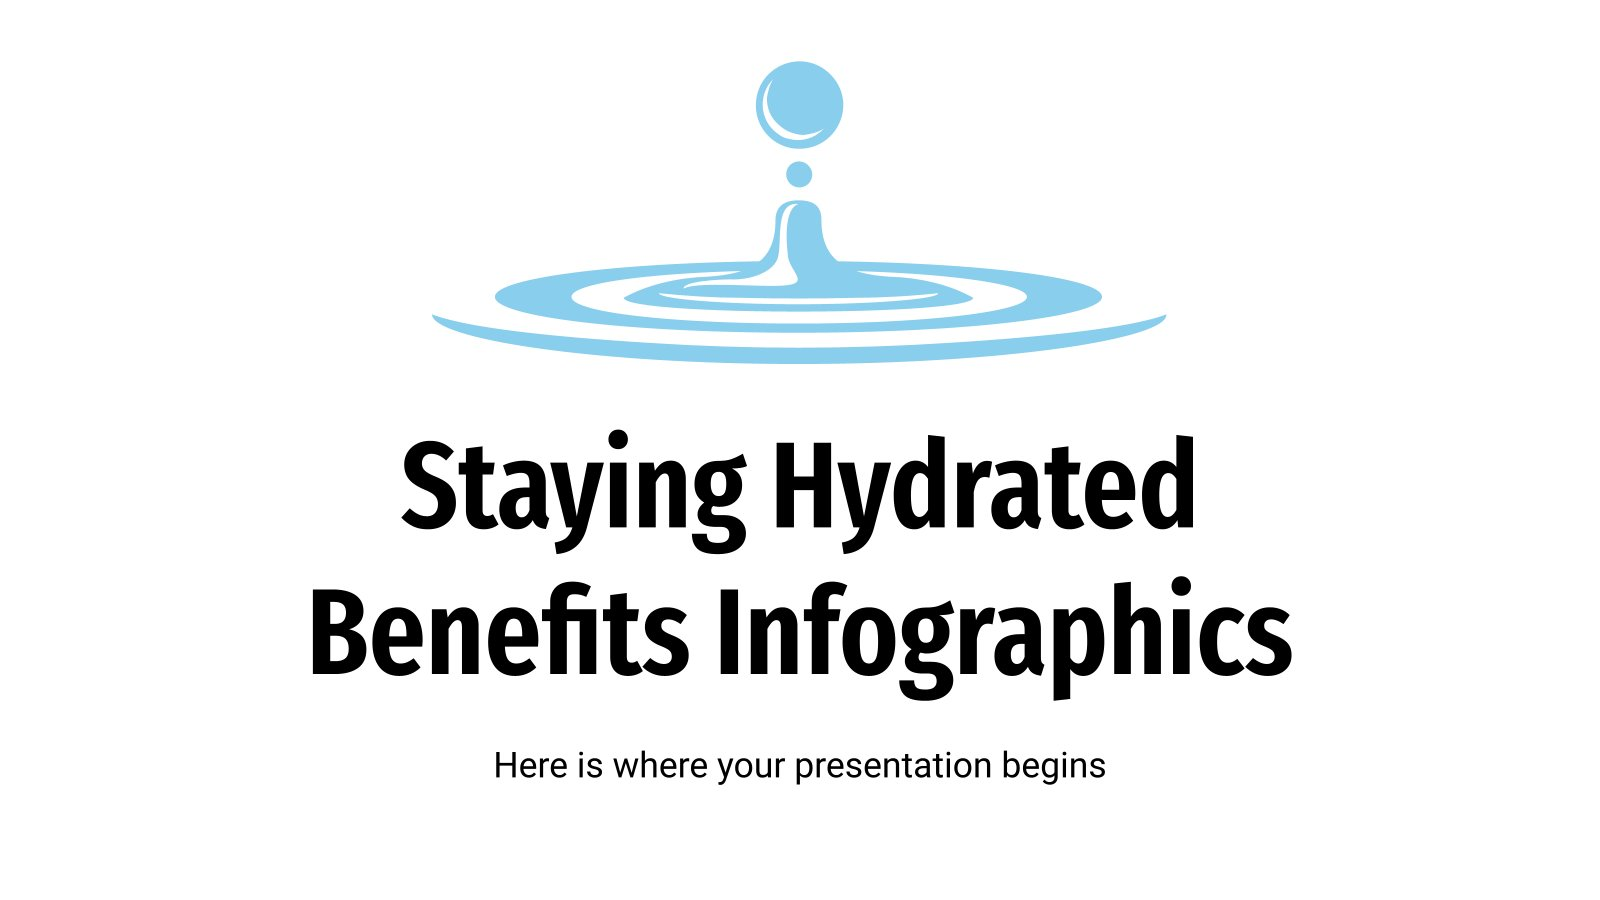 Staying Hydrated Benefits Infographics presentation template